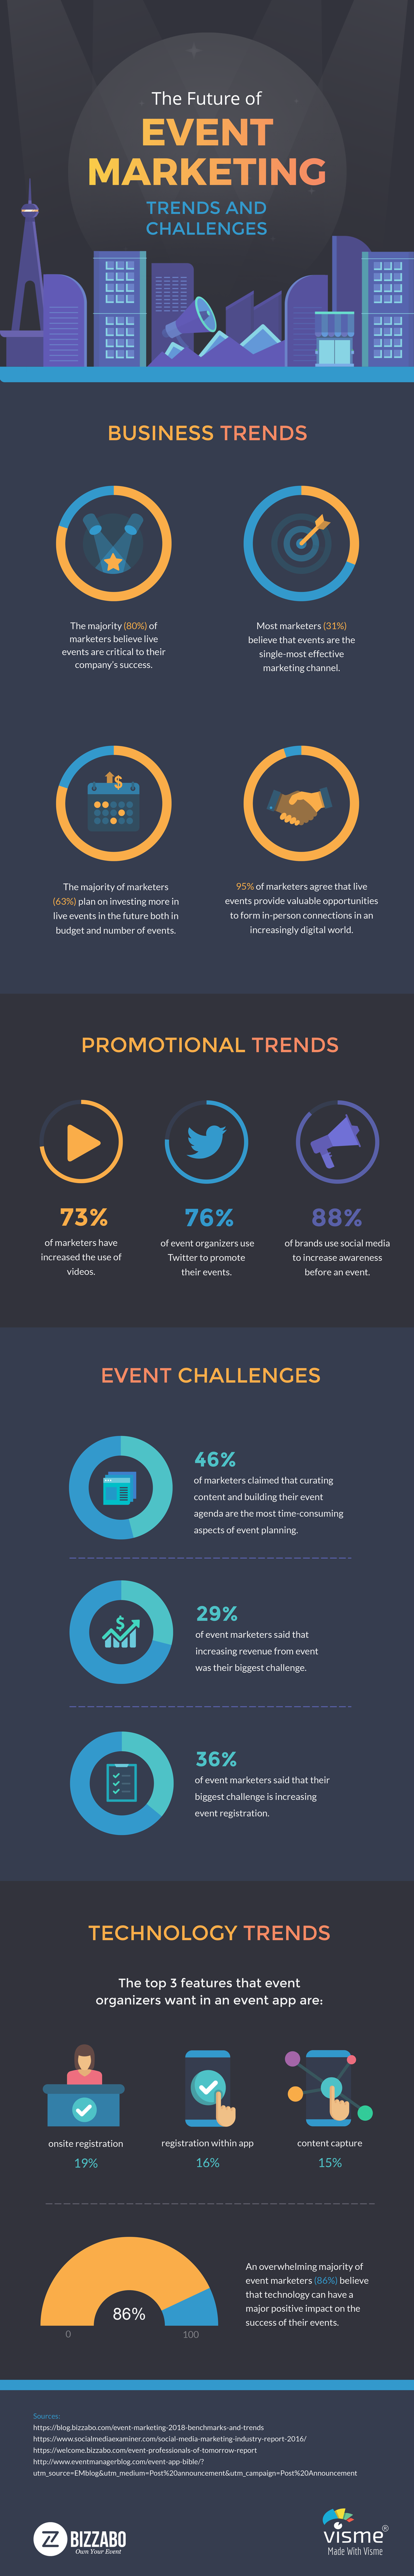 The Key Word is Engage: Future Trends and Challenges of Event Marketing - Infographic